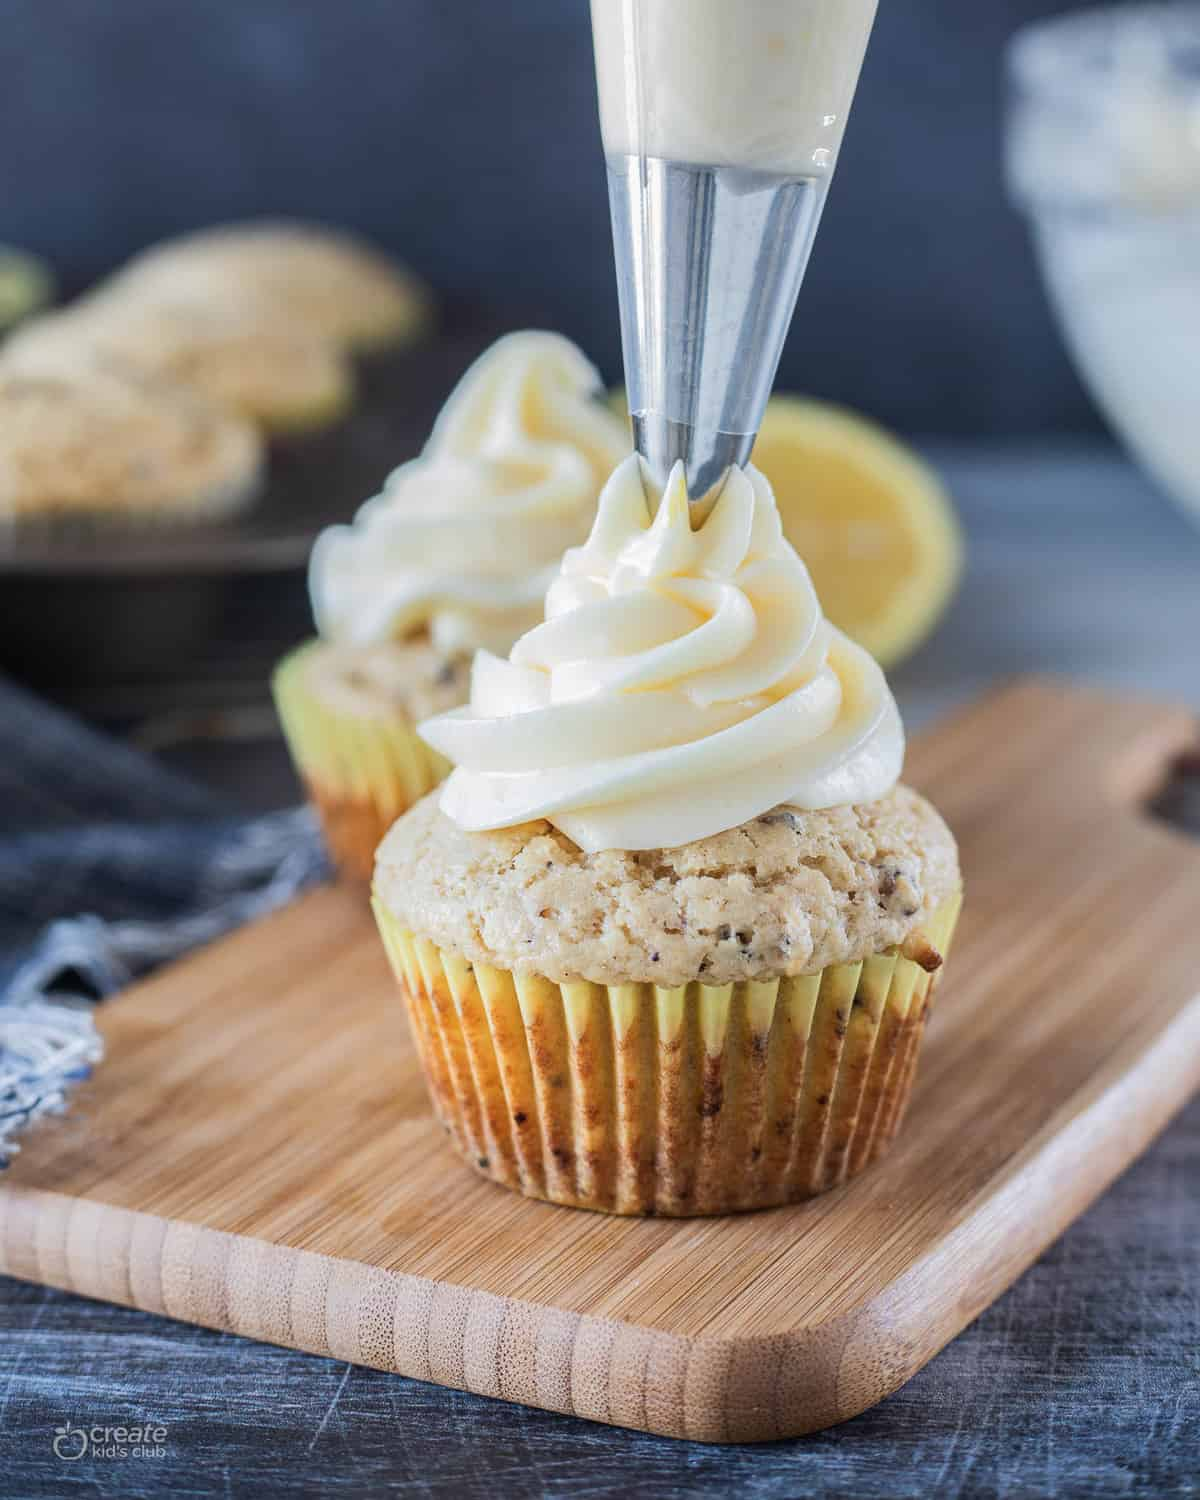 lemon cream cheese icing piped on top of a cupcake